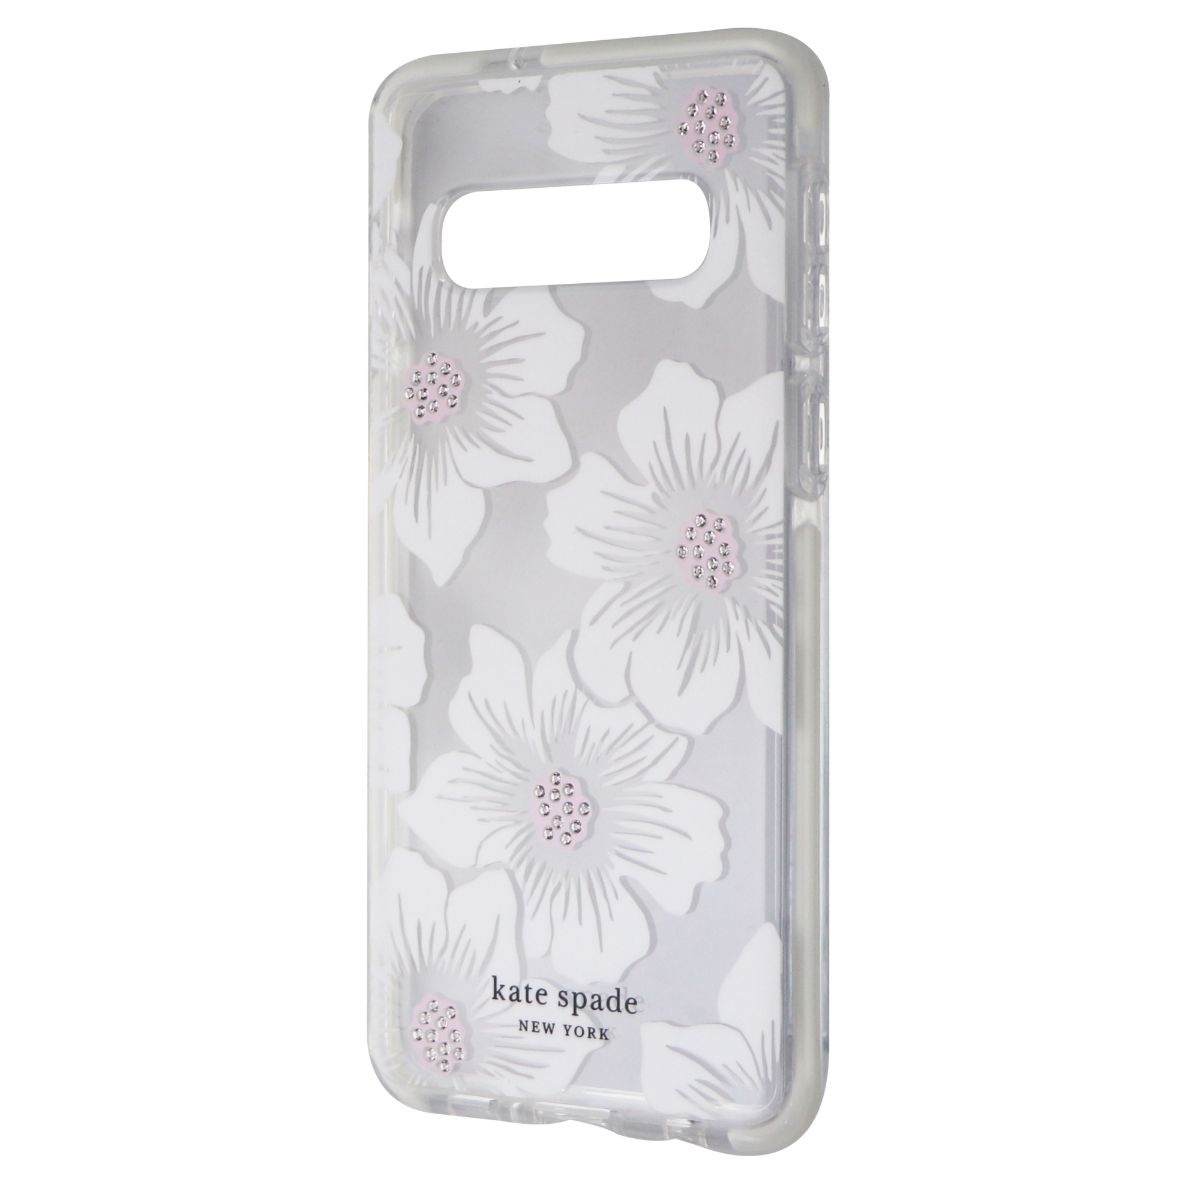 Kate Spade Defensive Hardshell Case for Galaxy S10 - Hollyhock / Clear / Cream